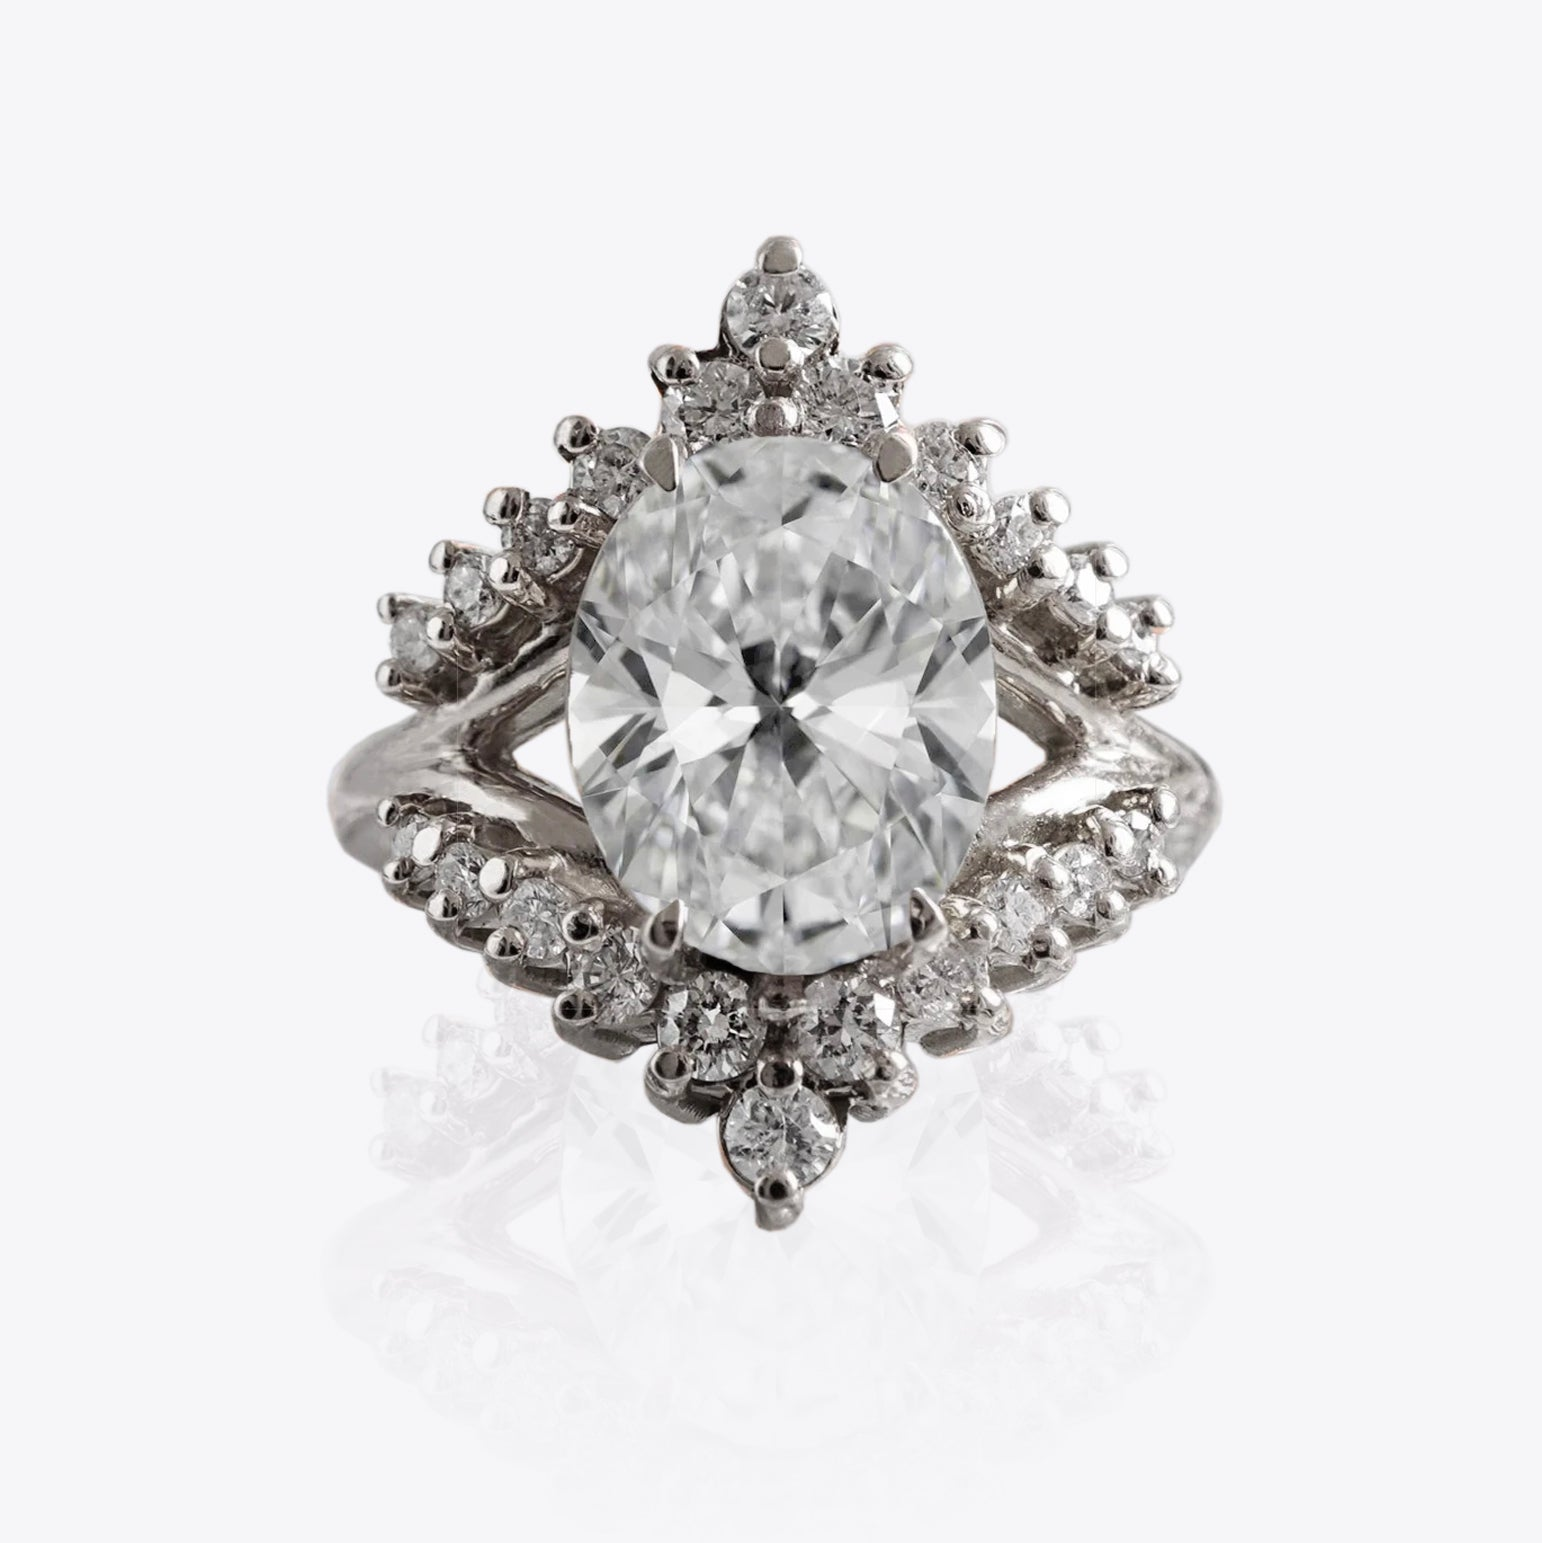 Tiara Diamond Ring, 2.51ct